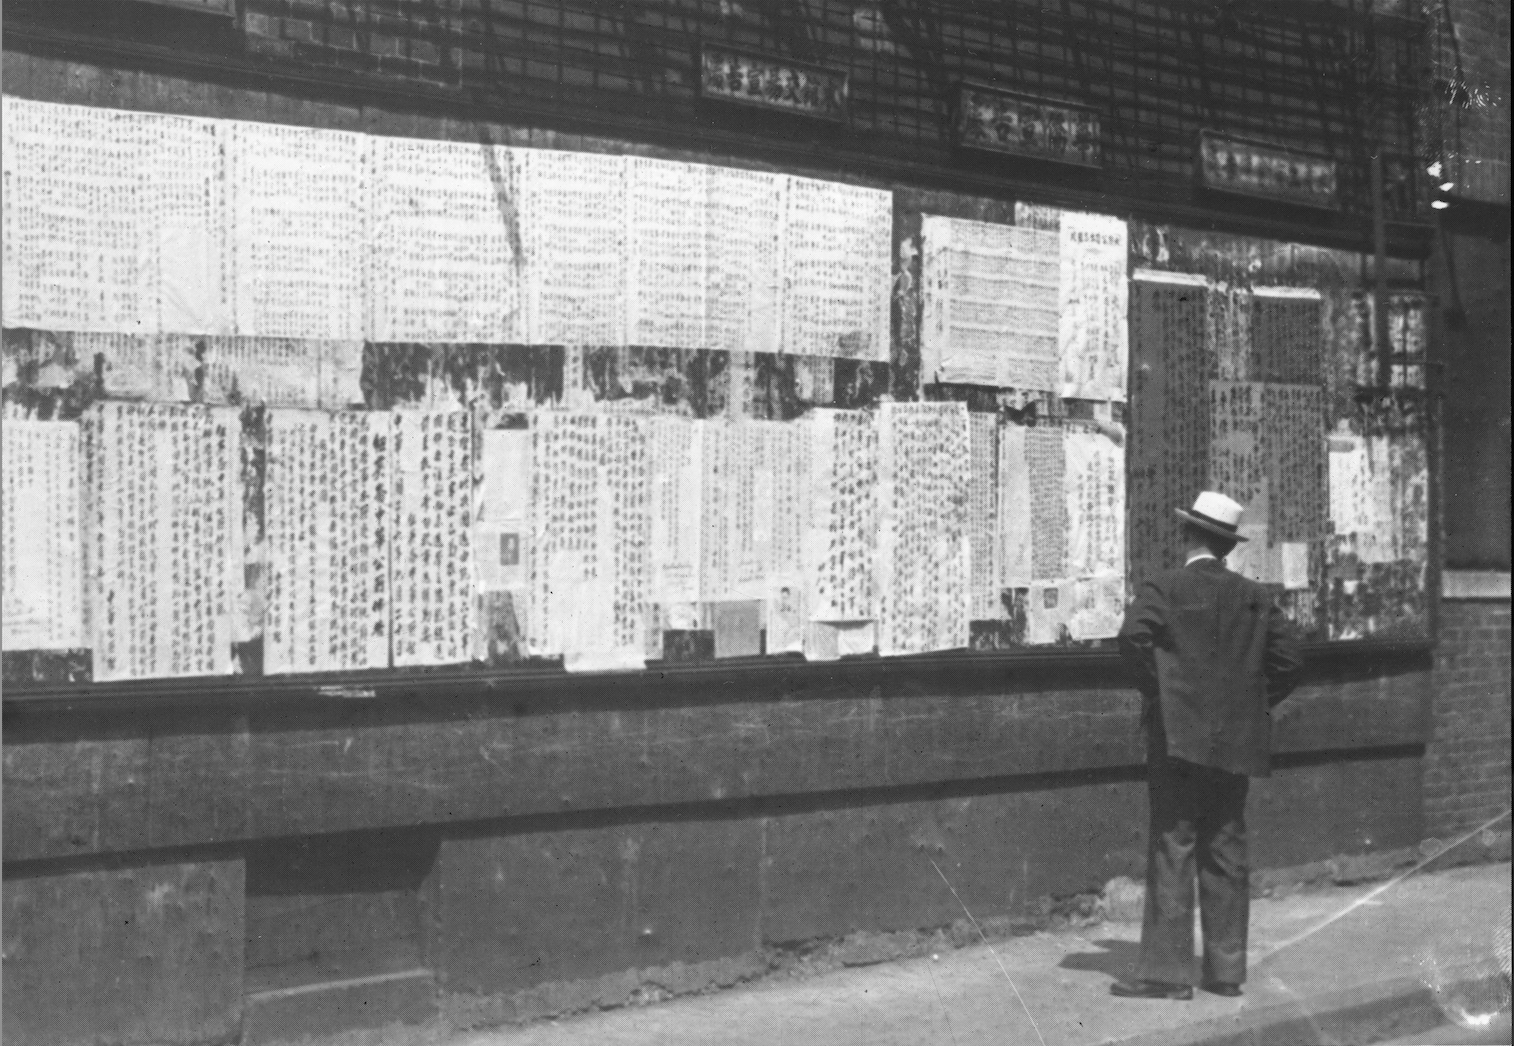 Oxford Street Bulletin Board, 1941 / 牛津街公告牌,1941年